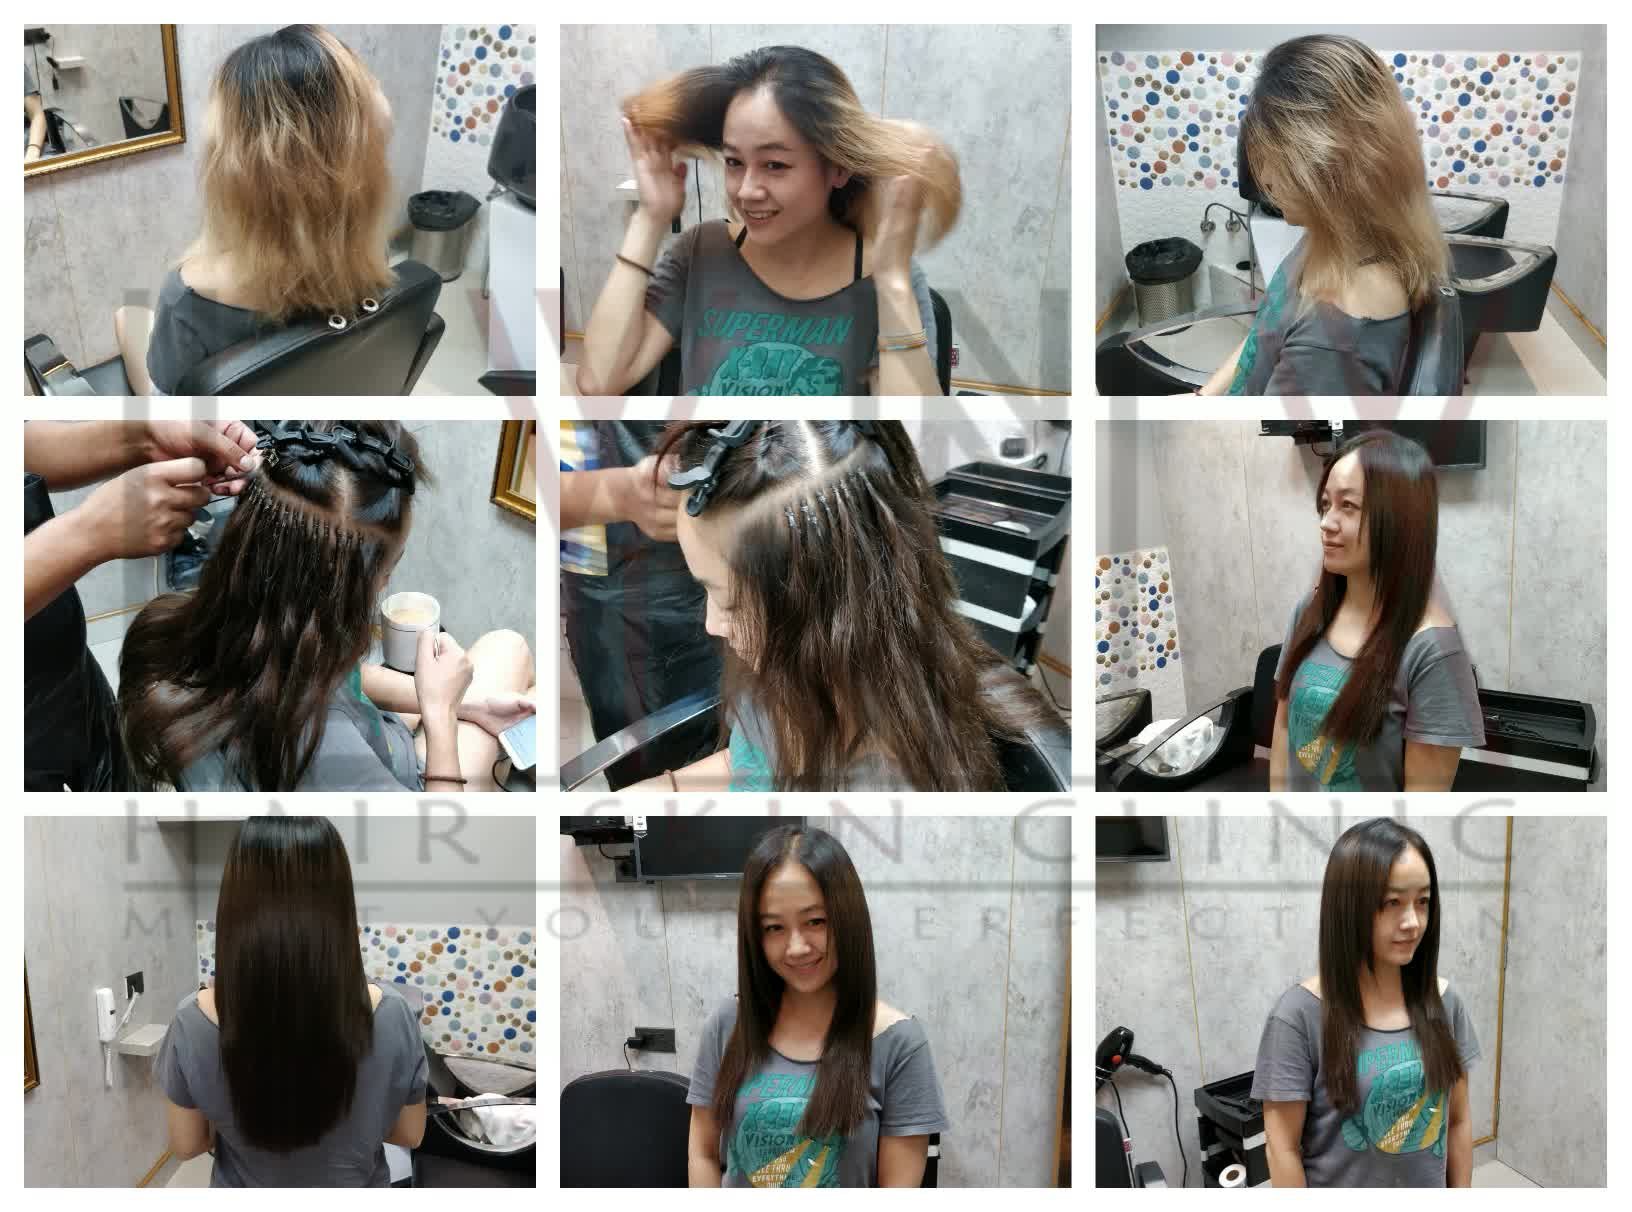 Permanent Hair Extension in Gurgaon, Permanent Hair Extension in Delhi, Permanent Hair Extension in Jaipur, Best Hair Extension in Gurgaon, Best Hair Extension in Delhi, Best Hair Extension in Jaipur, Hair Extension Service in Gurgaon, Hair Extension Service in Delhi, Hair Extension Service in Jaipur